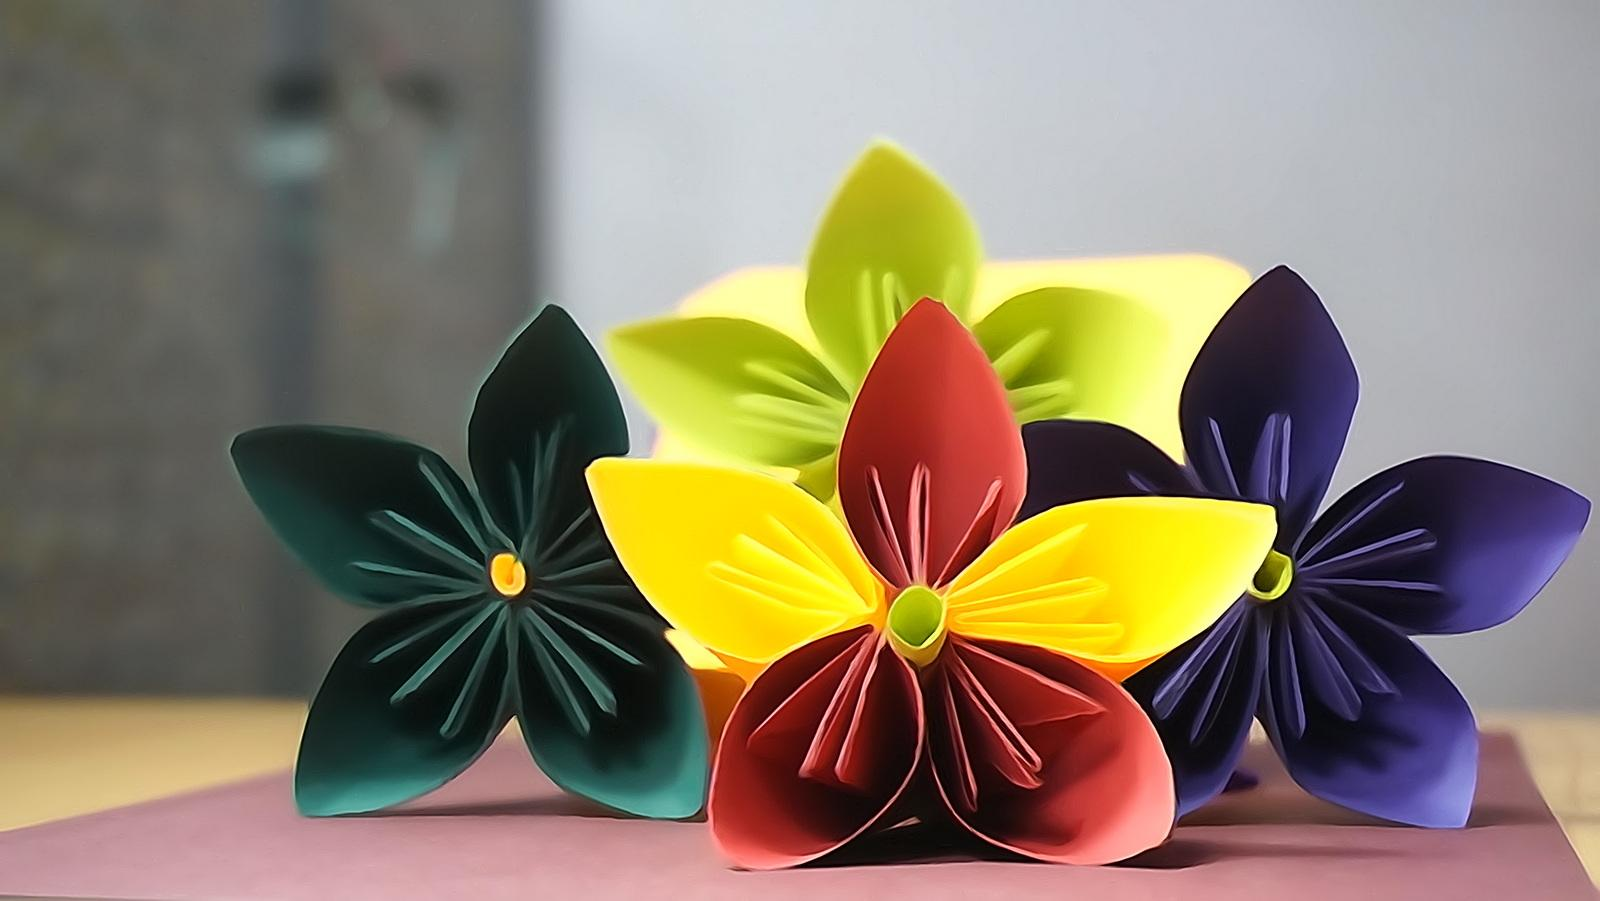 7 Tips To Craft A Blissful Handmade Paper Flower 10 Mins Crafts